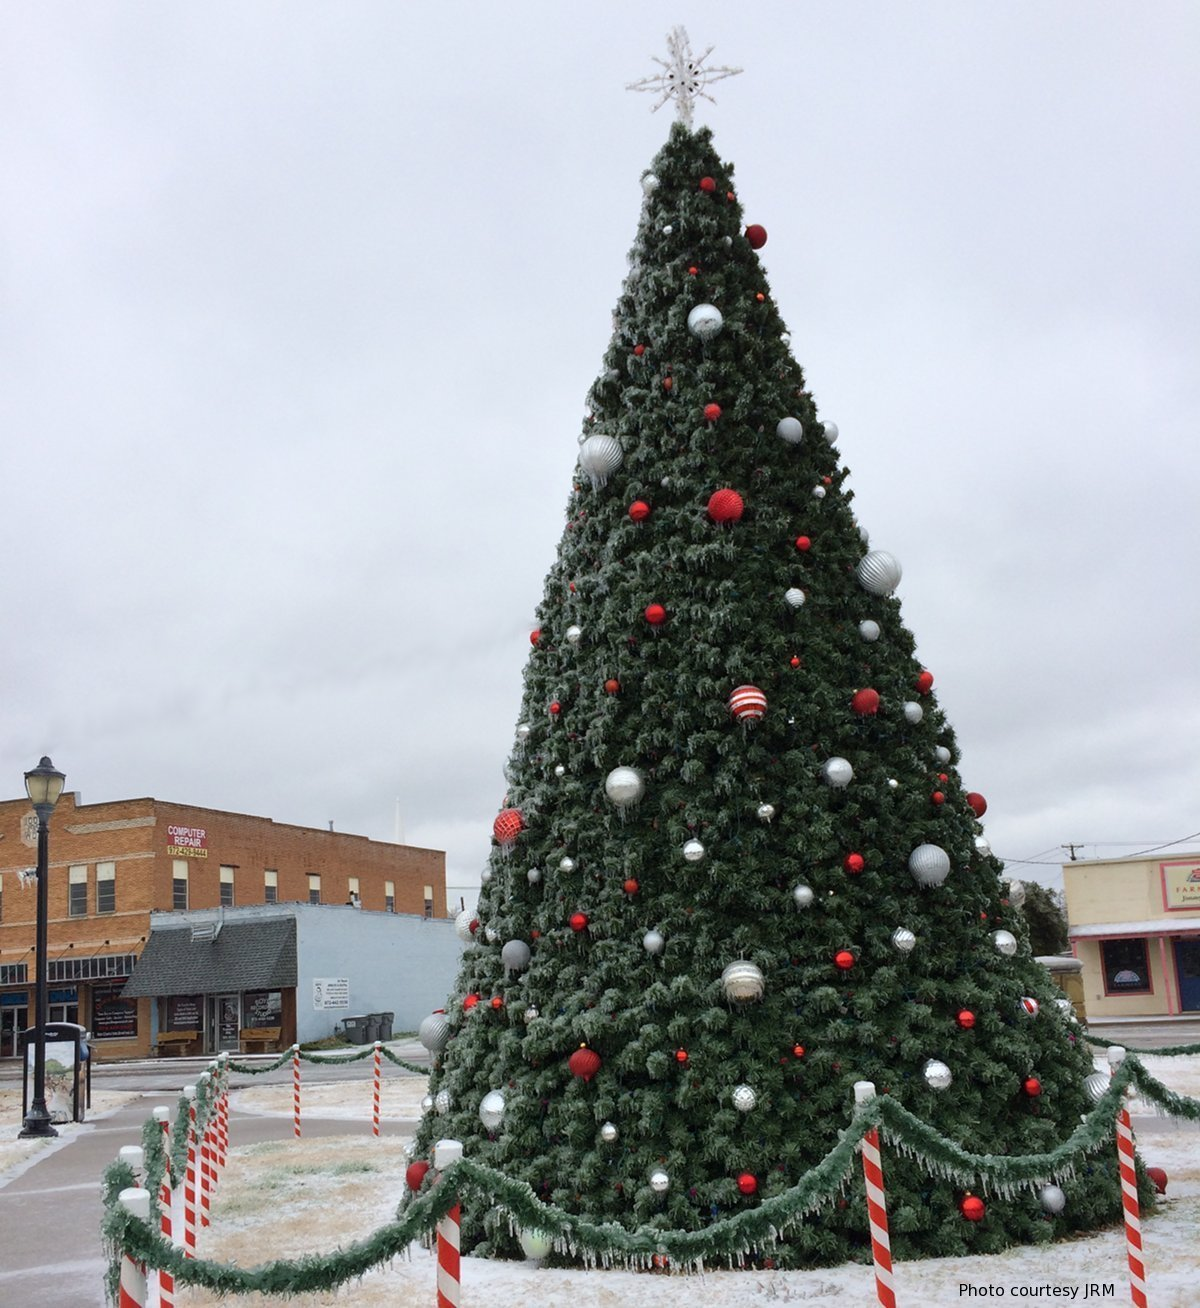 City of Wylie Christmas tree in Olde City Park